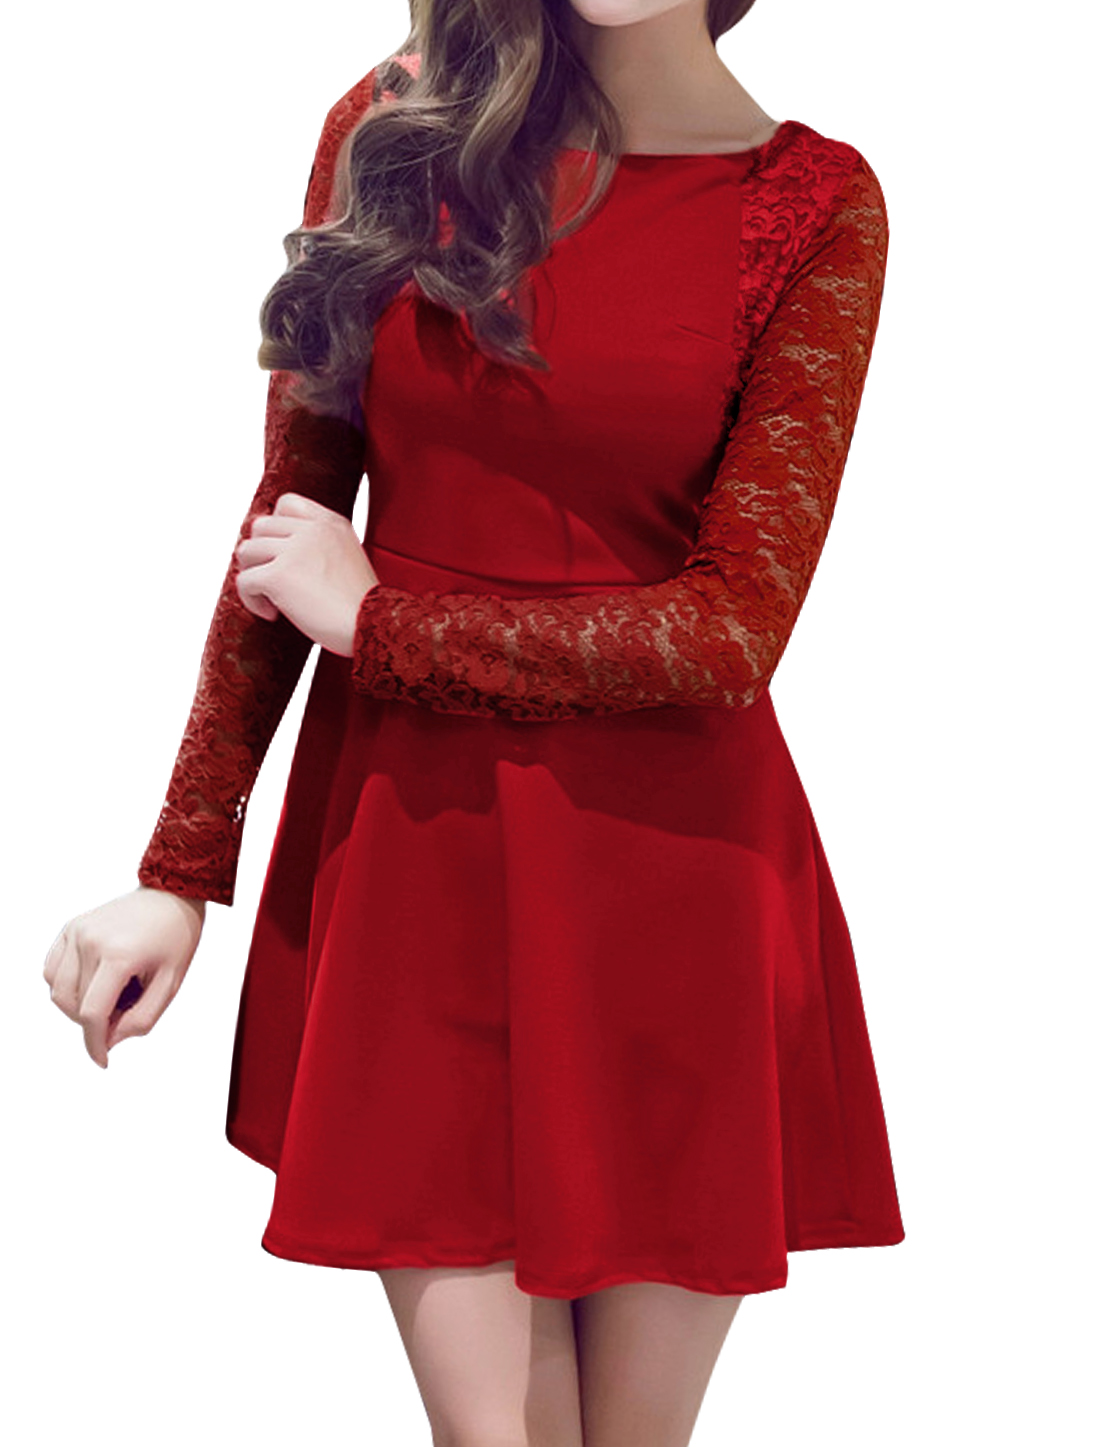 Women Long Sleeves Lace Panel Fit and Flare Dress Red S